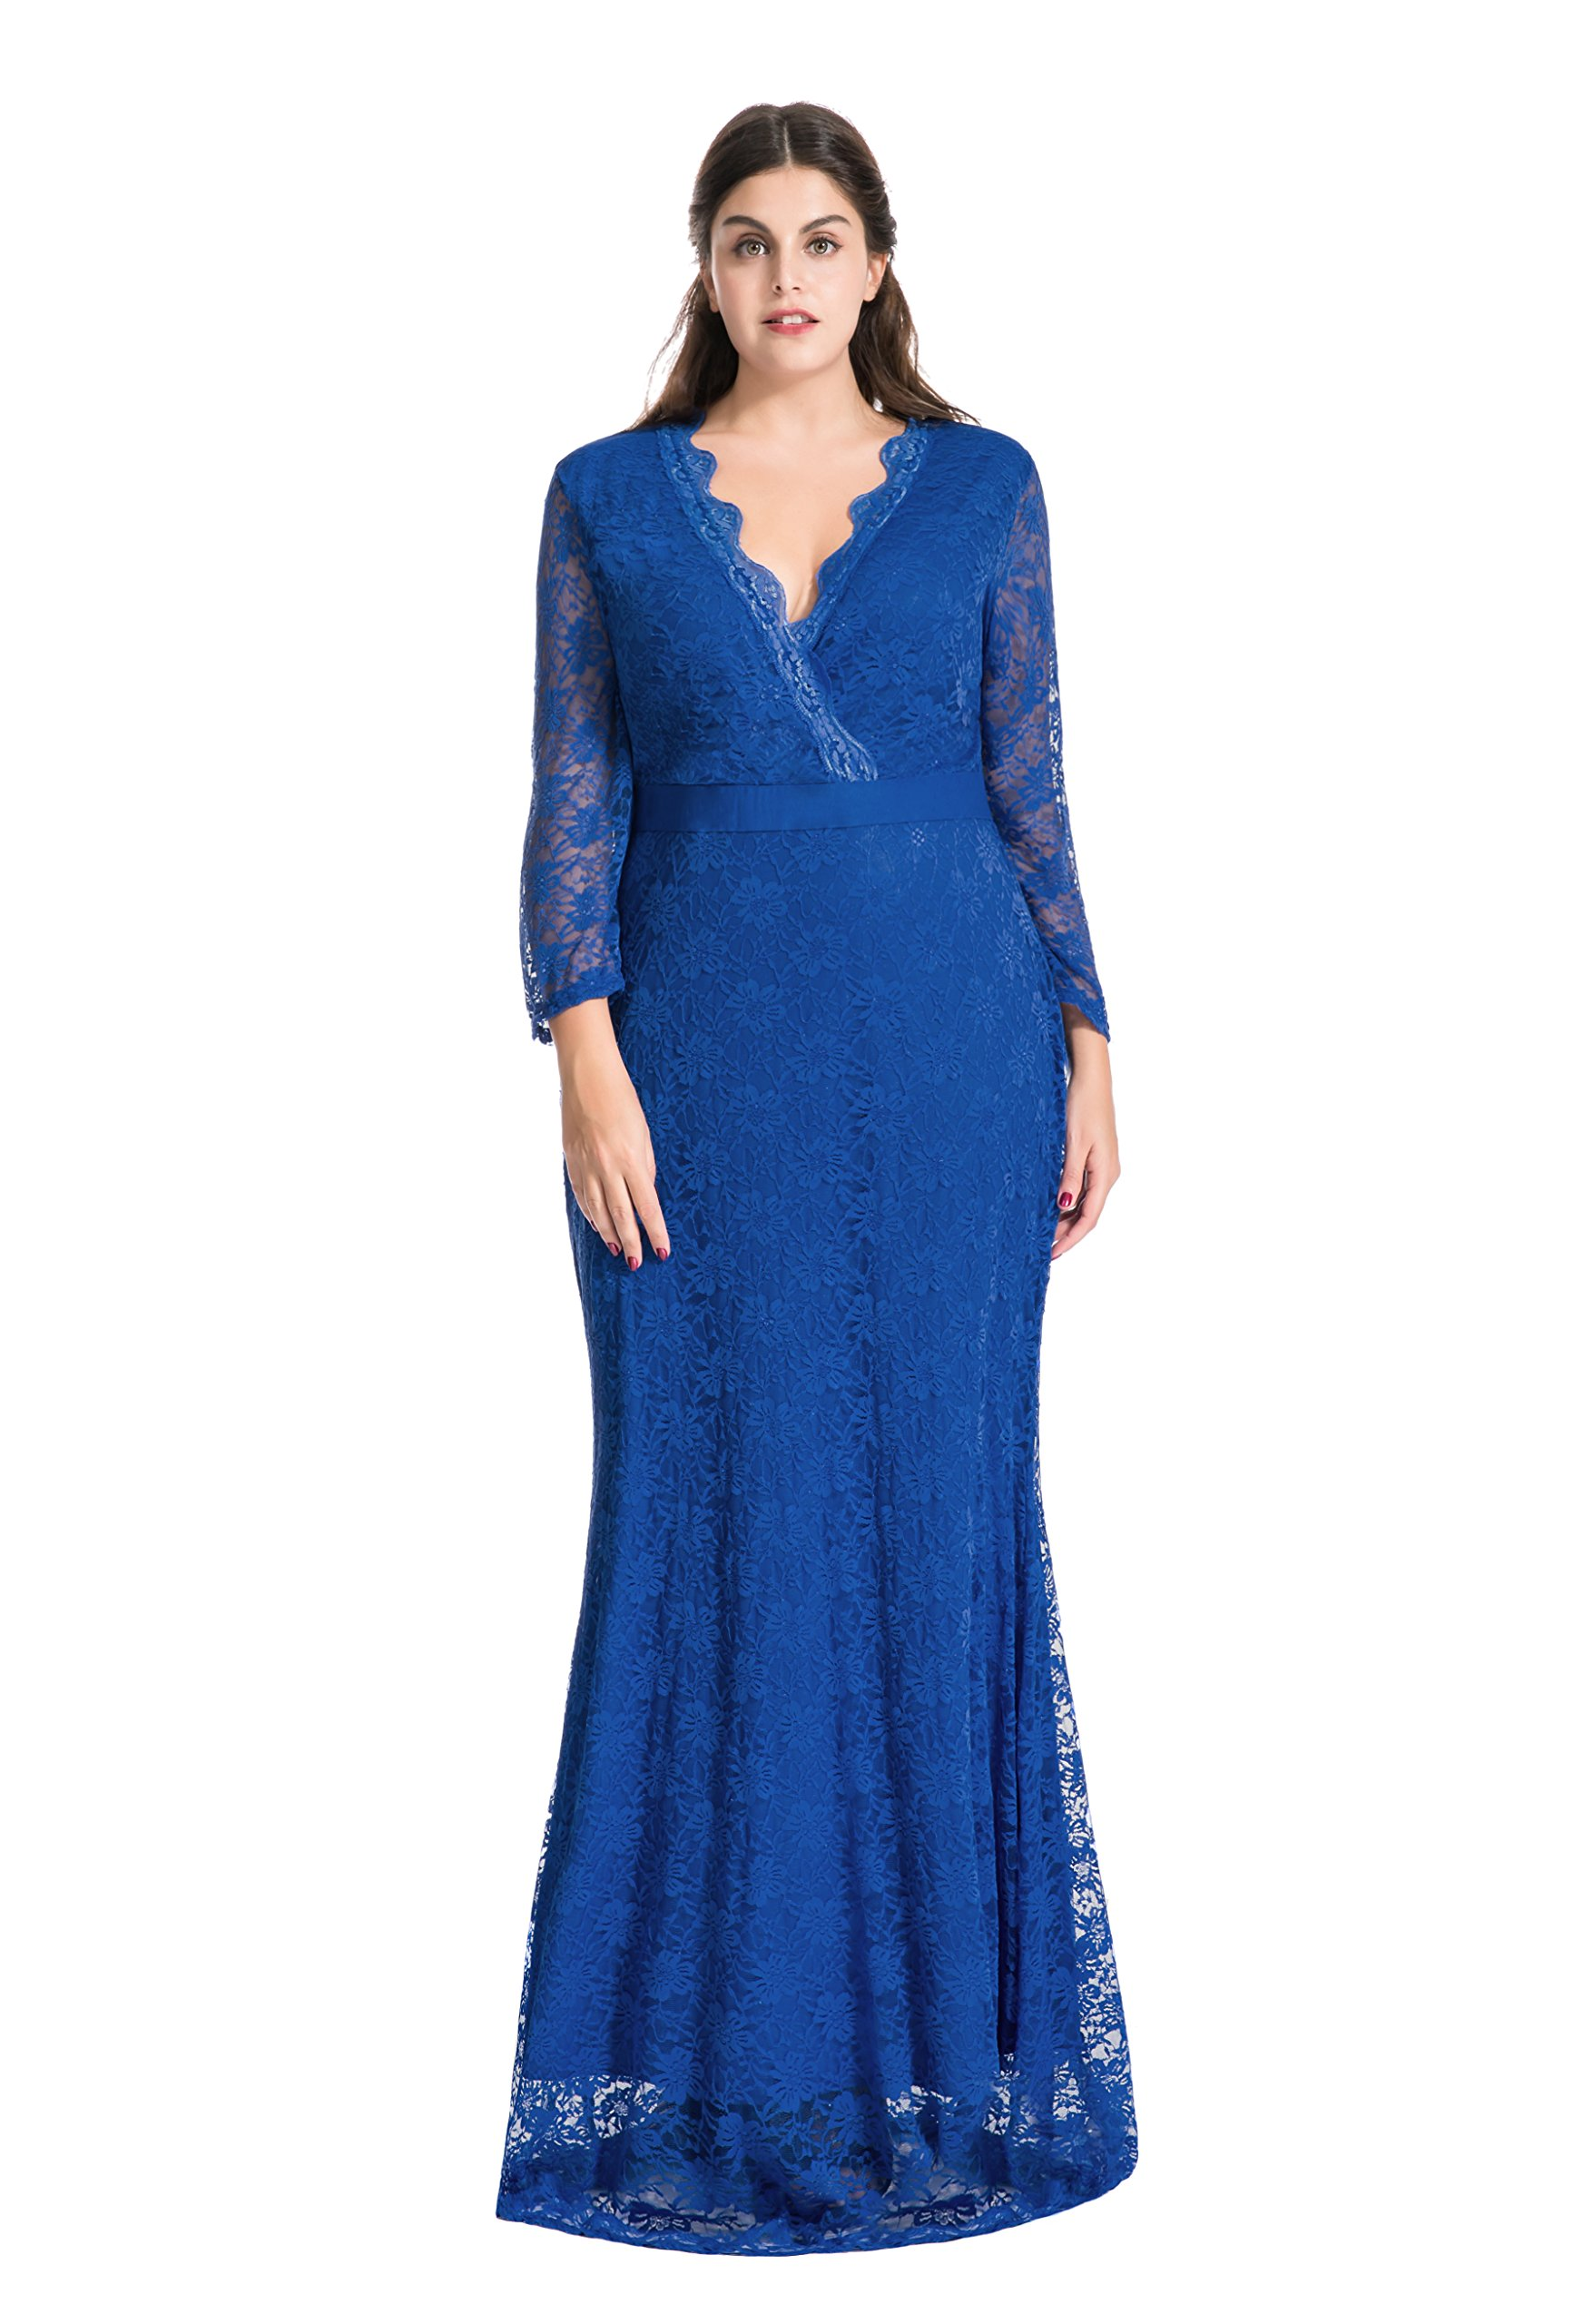 Plus Size Evening Dresses Amazon - Down To Earth Bali